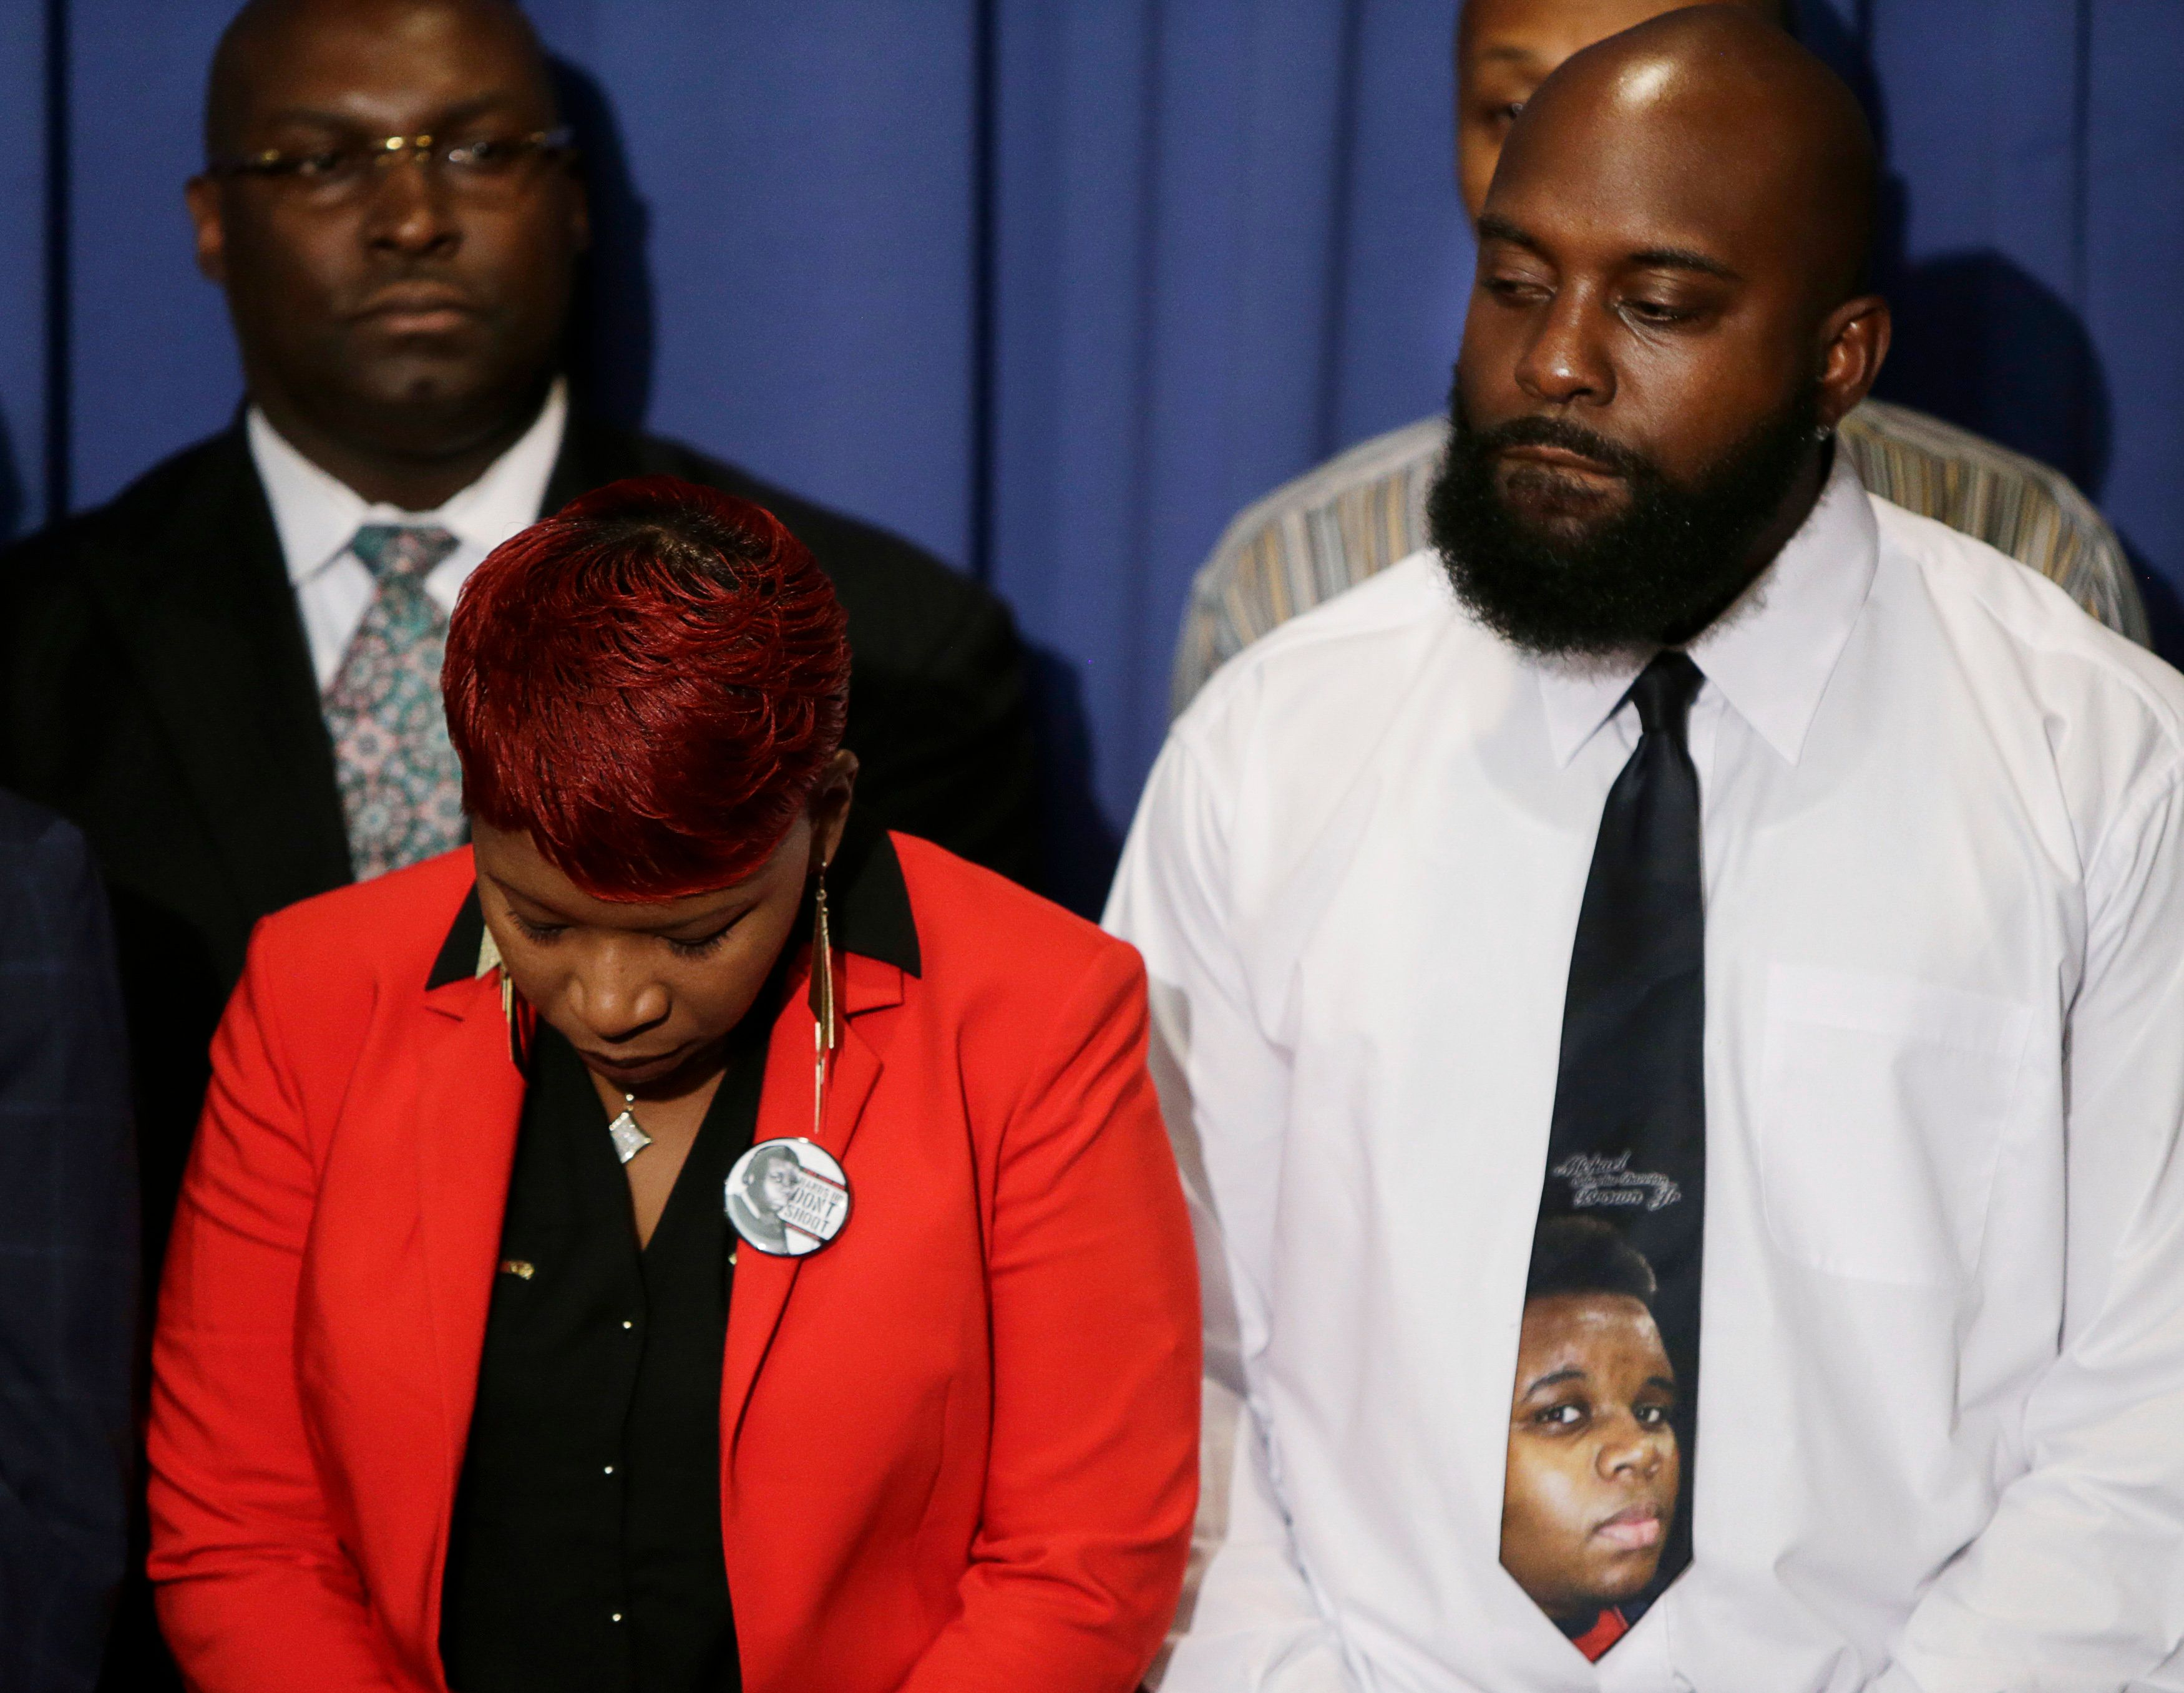 The parents of Michael Brown, Lesley McSpadden (L) and Michael Brown Sr. (R), wear remembrances of their son at a news conference at the National Press Club in Washington September 25, 2014. Five people were arrested and two police officers injured in renewed violence overnight on the streets of Ferguson, Missouri, sparked by a fire that destroyed a shrine to Michael Brown, a teenager killed by a police officer last month. REUTERS/Gary Cameron    (UNITED STATES - Tags: CRIME LAW CIVIL UNREST)